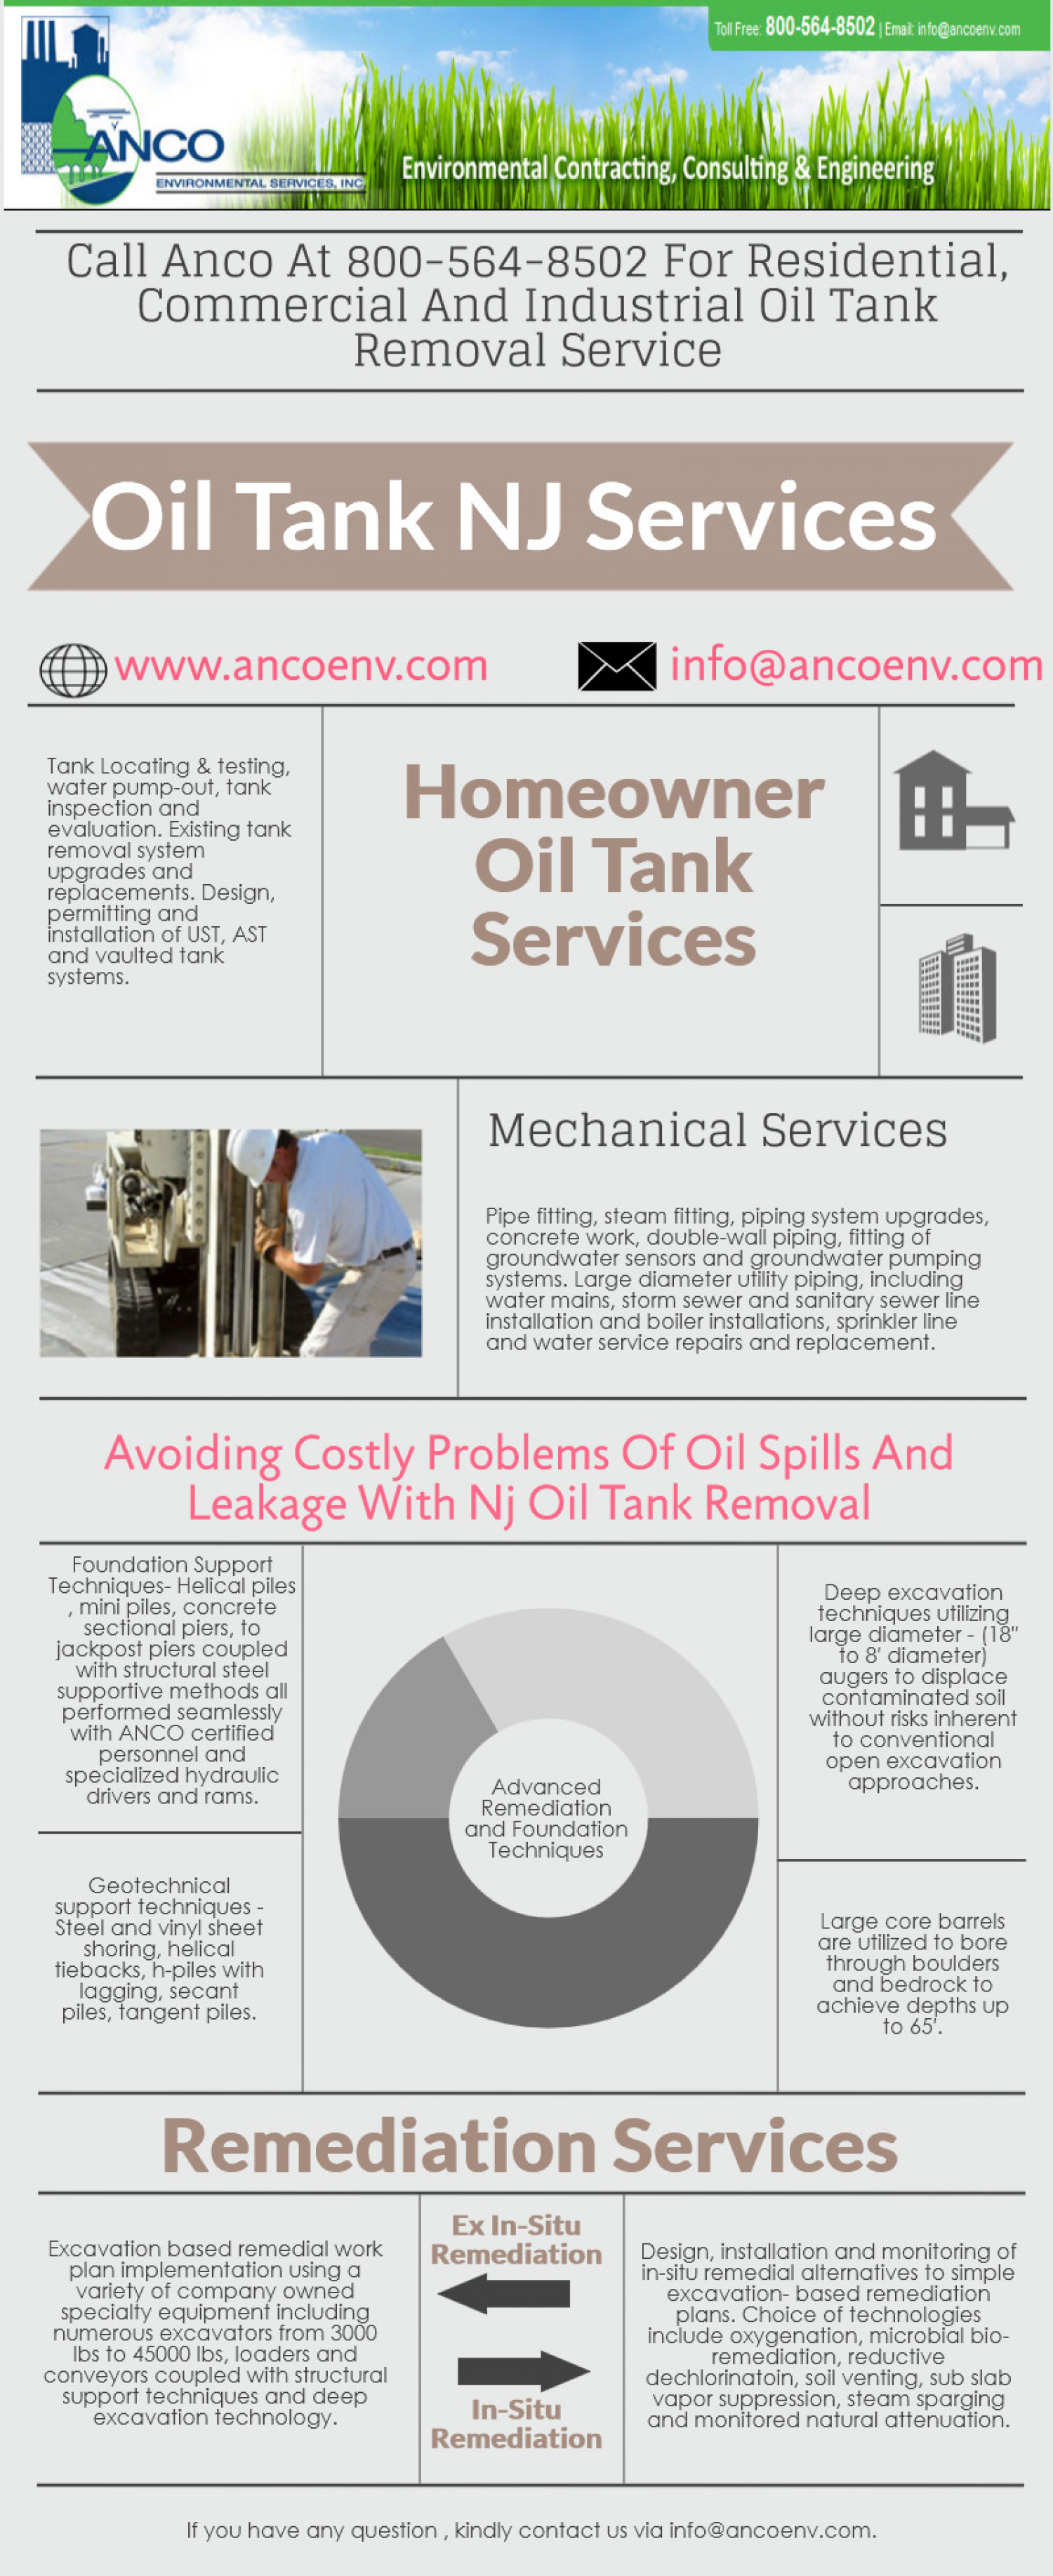 NJ Oil Tank Removal Infographic